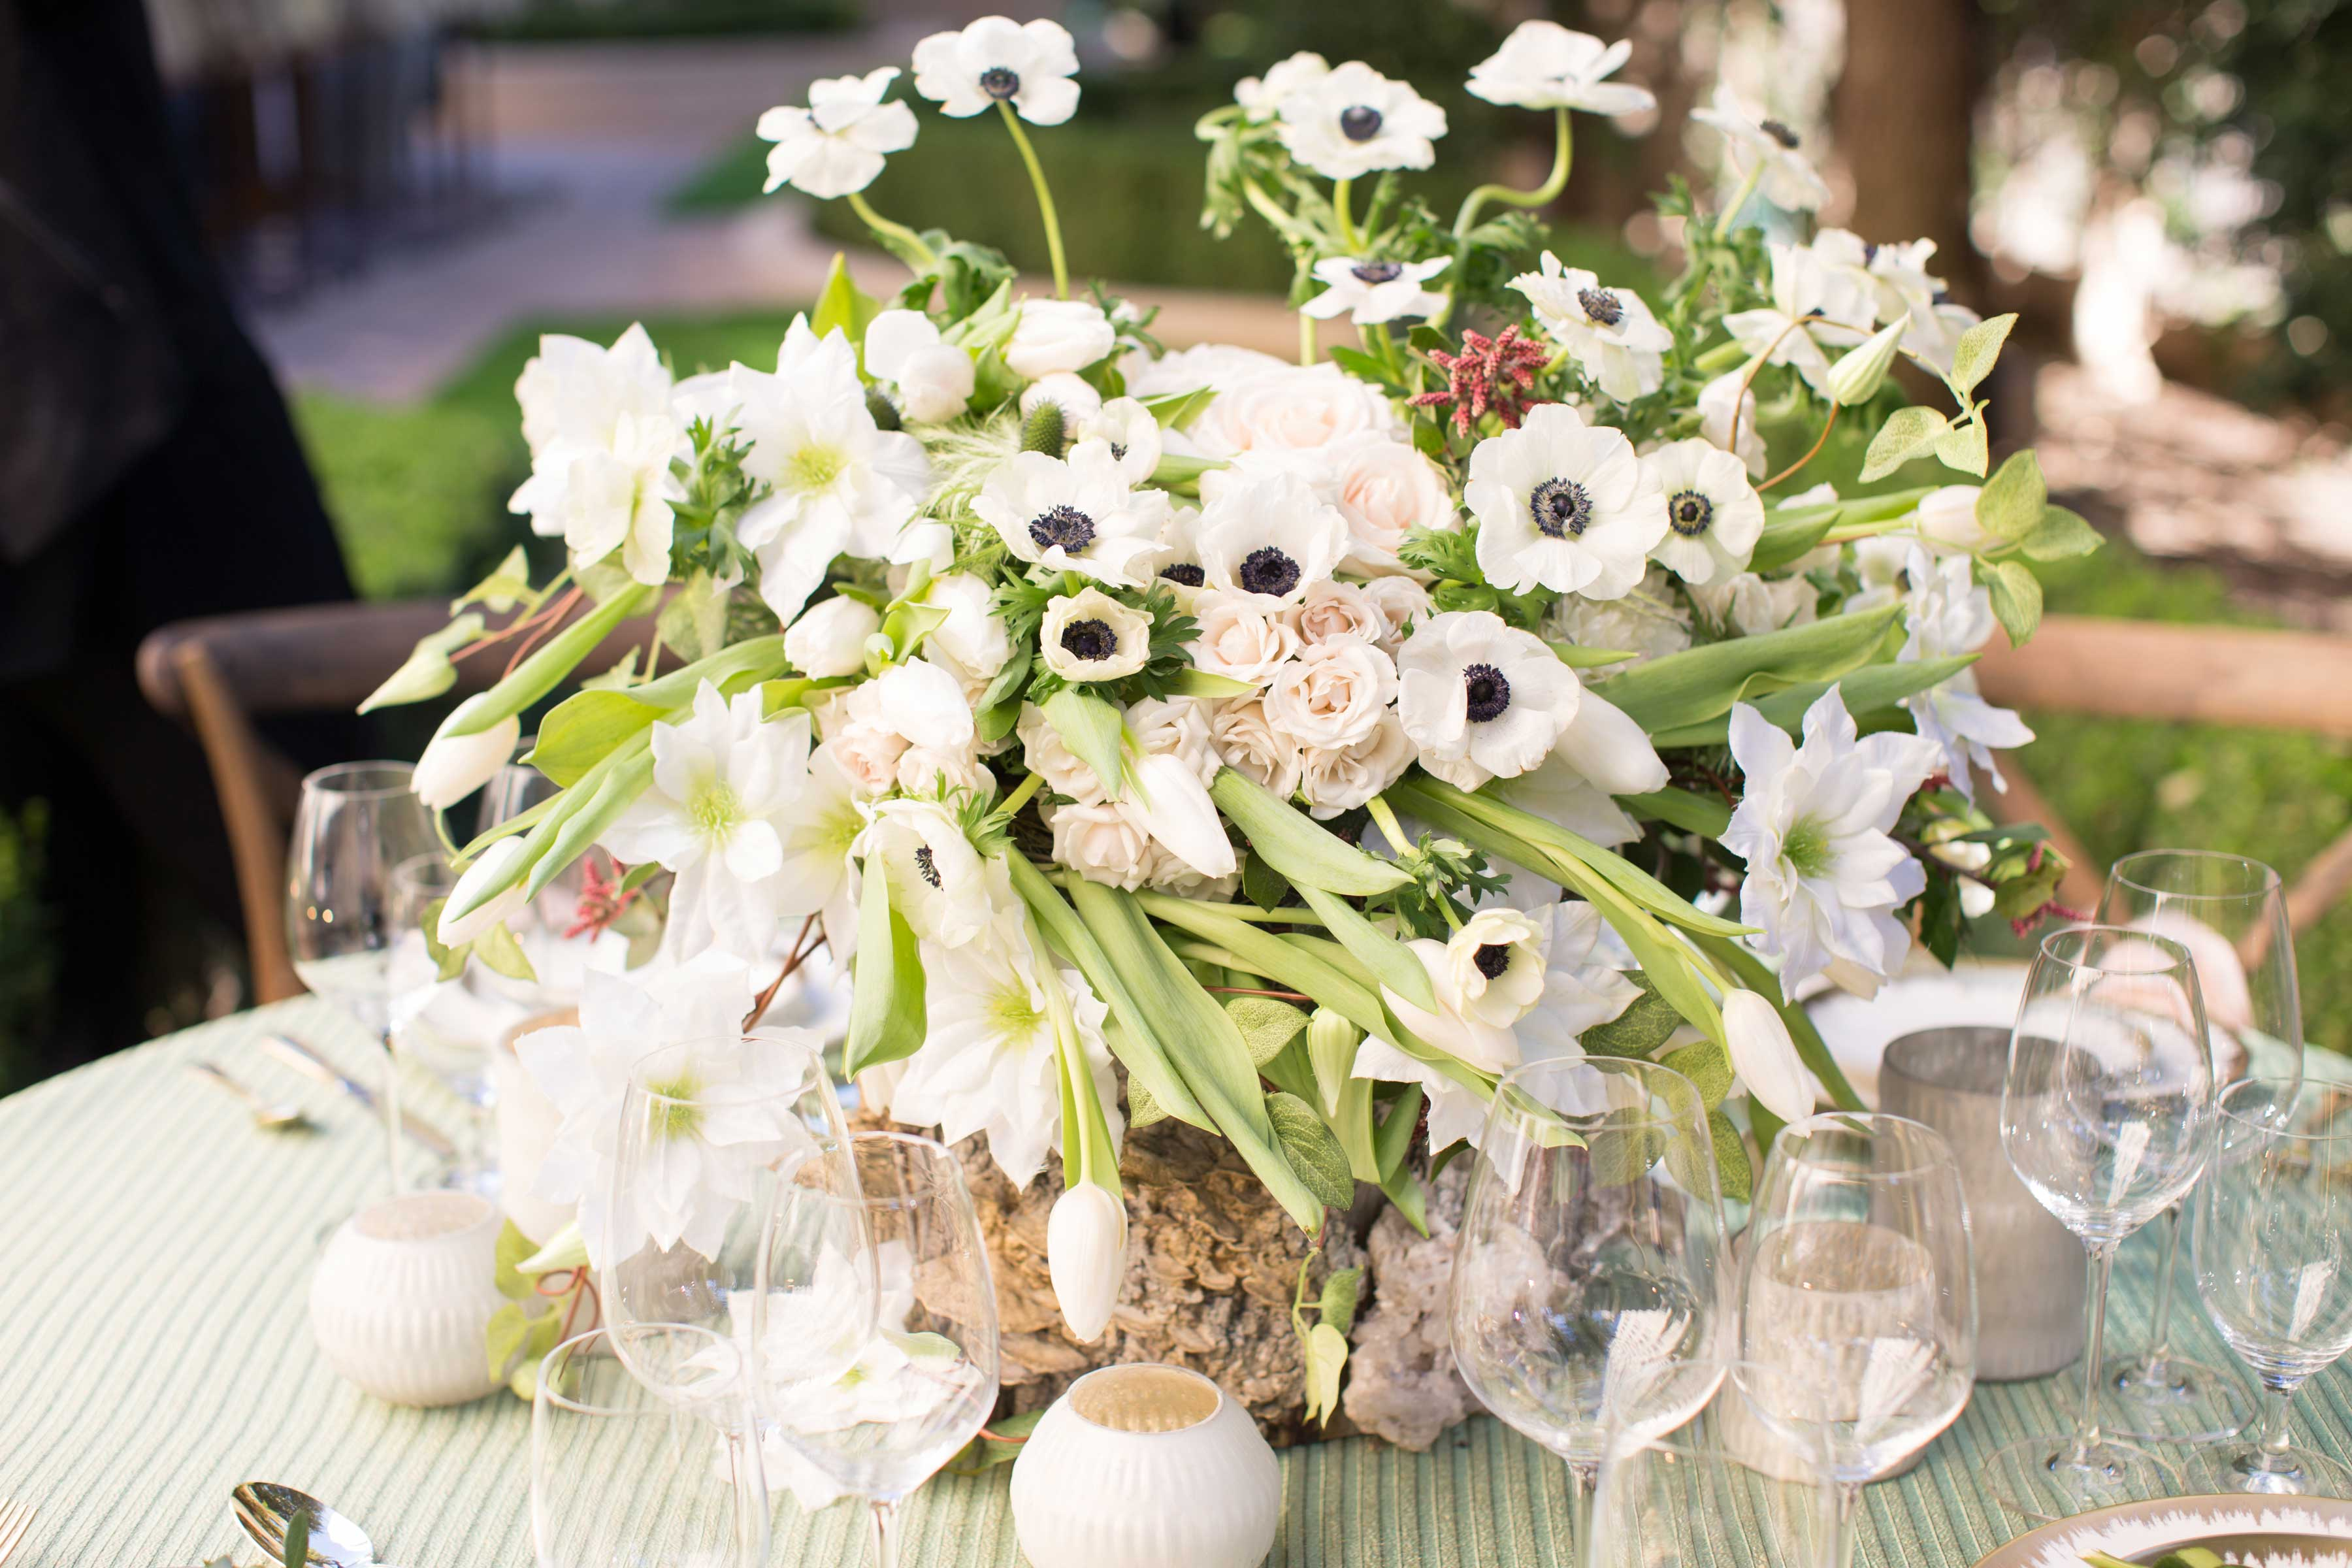 Wood tree stump centerpiece vase with white flowers, anemone blooms